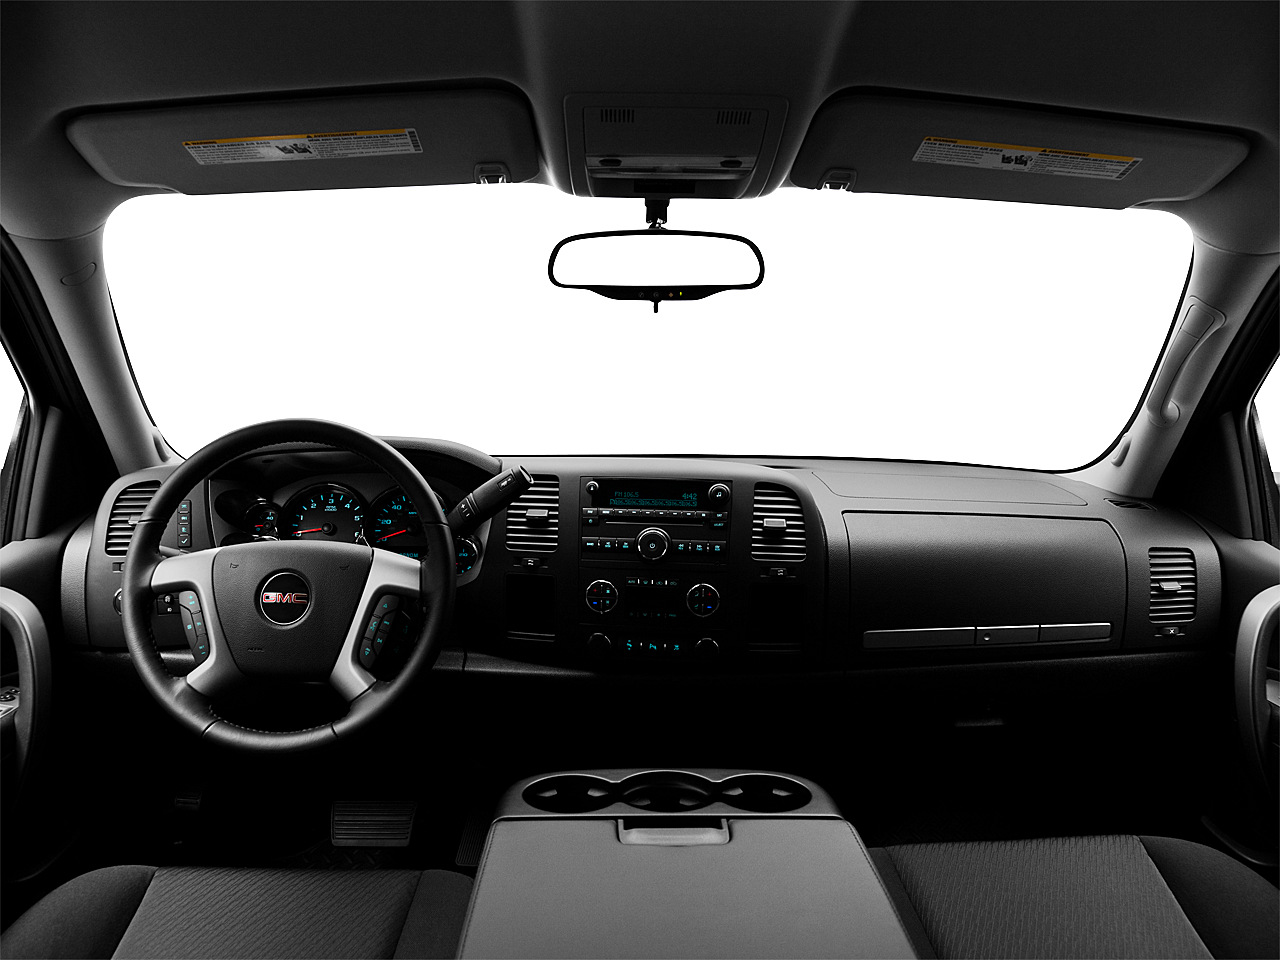 2011 GMC Sierra 1500 SLE, centered wide dash shot